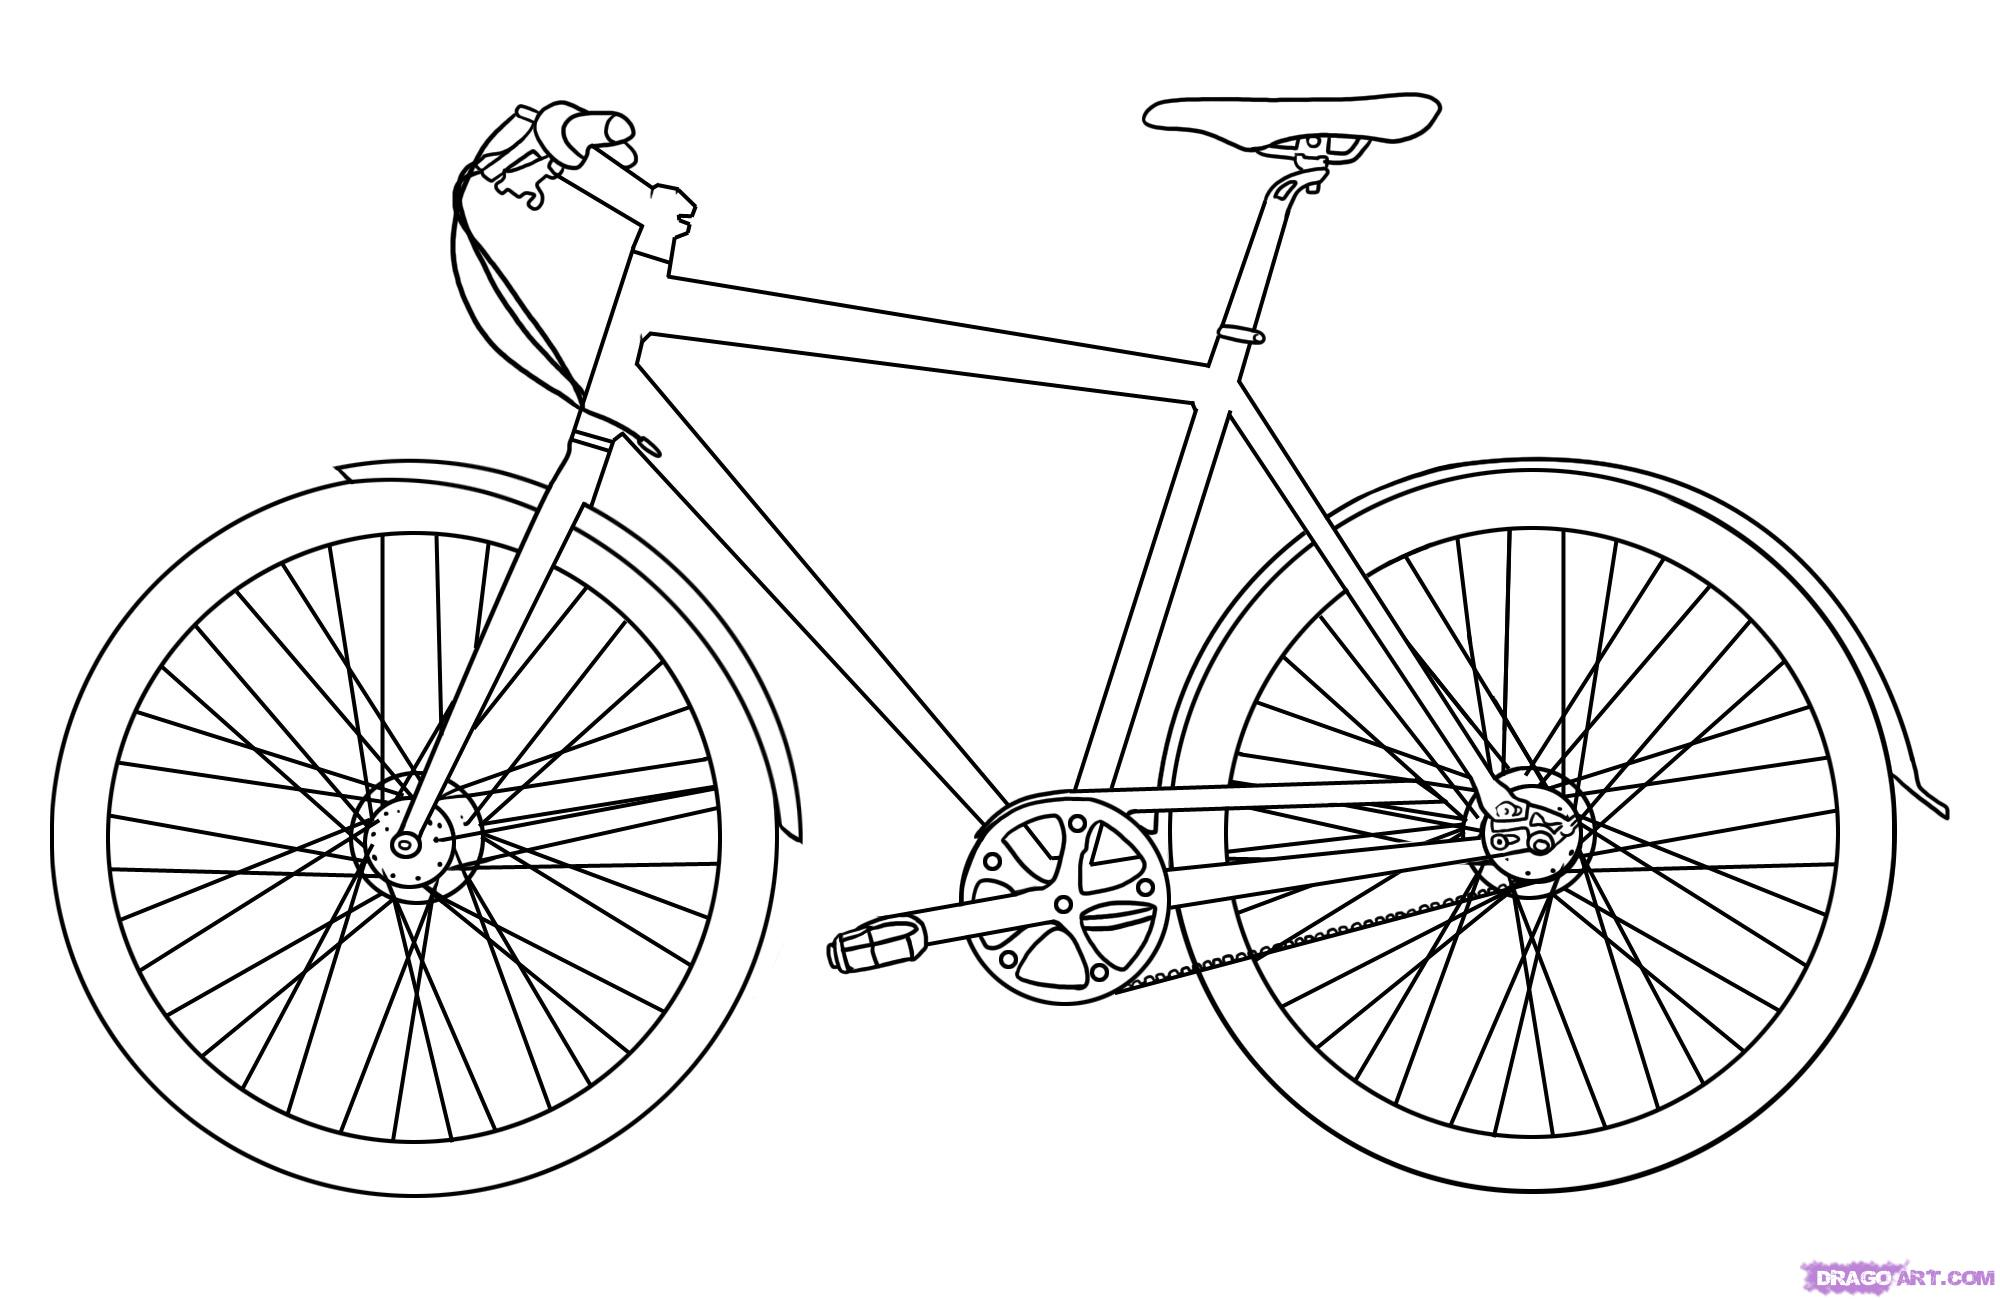 Drawn pushbike old bicycle Draw How FREE Stuff to